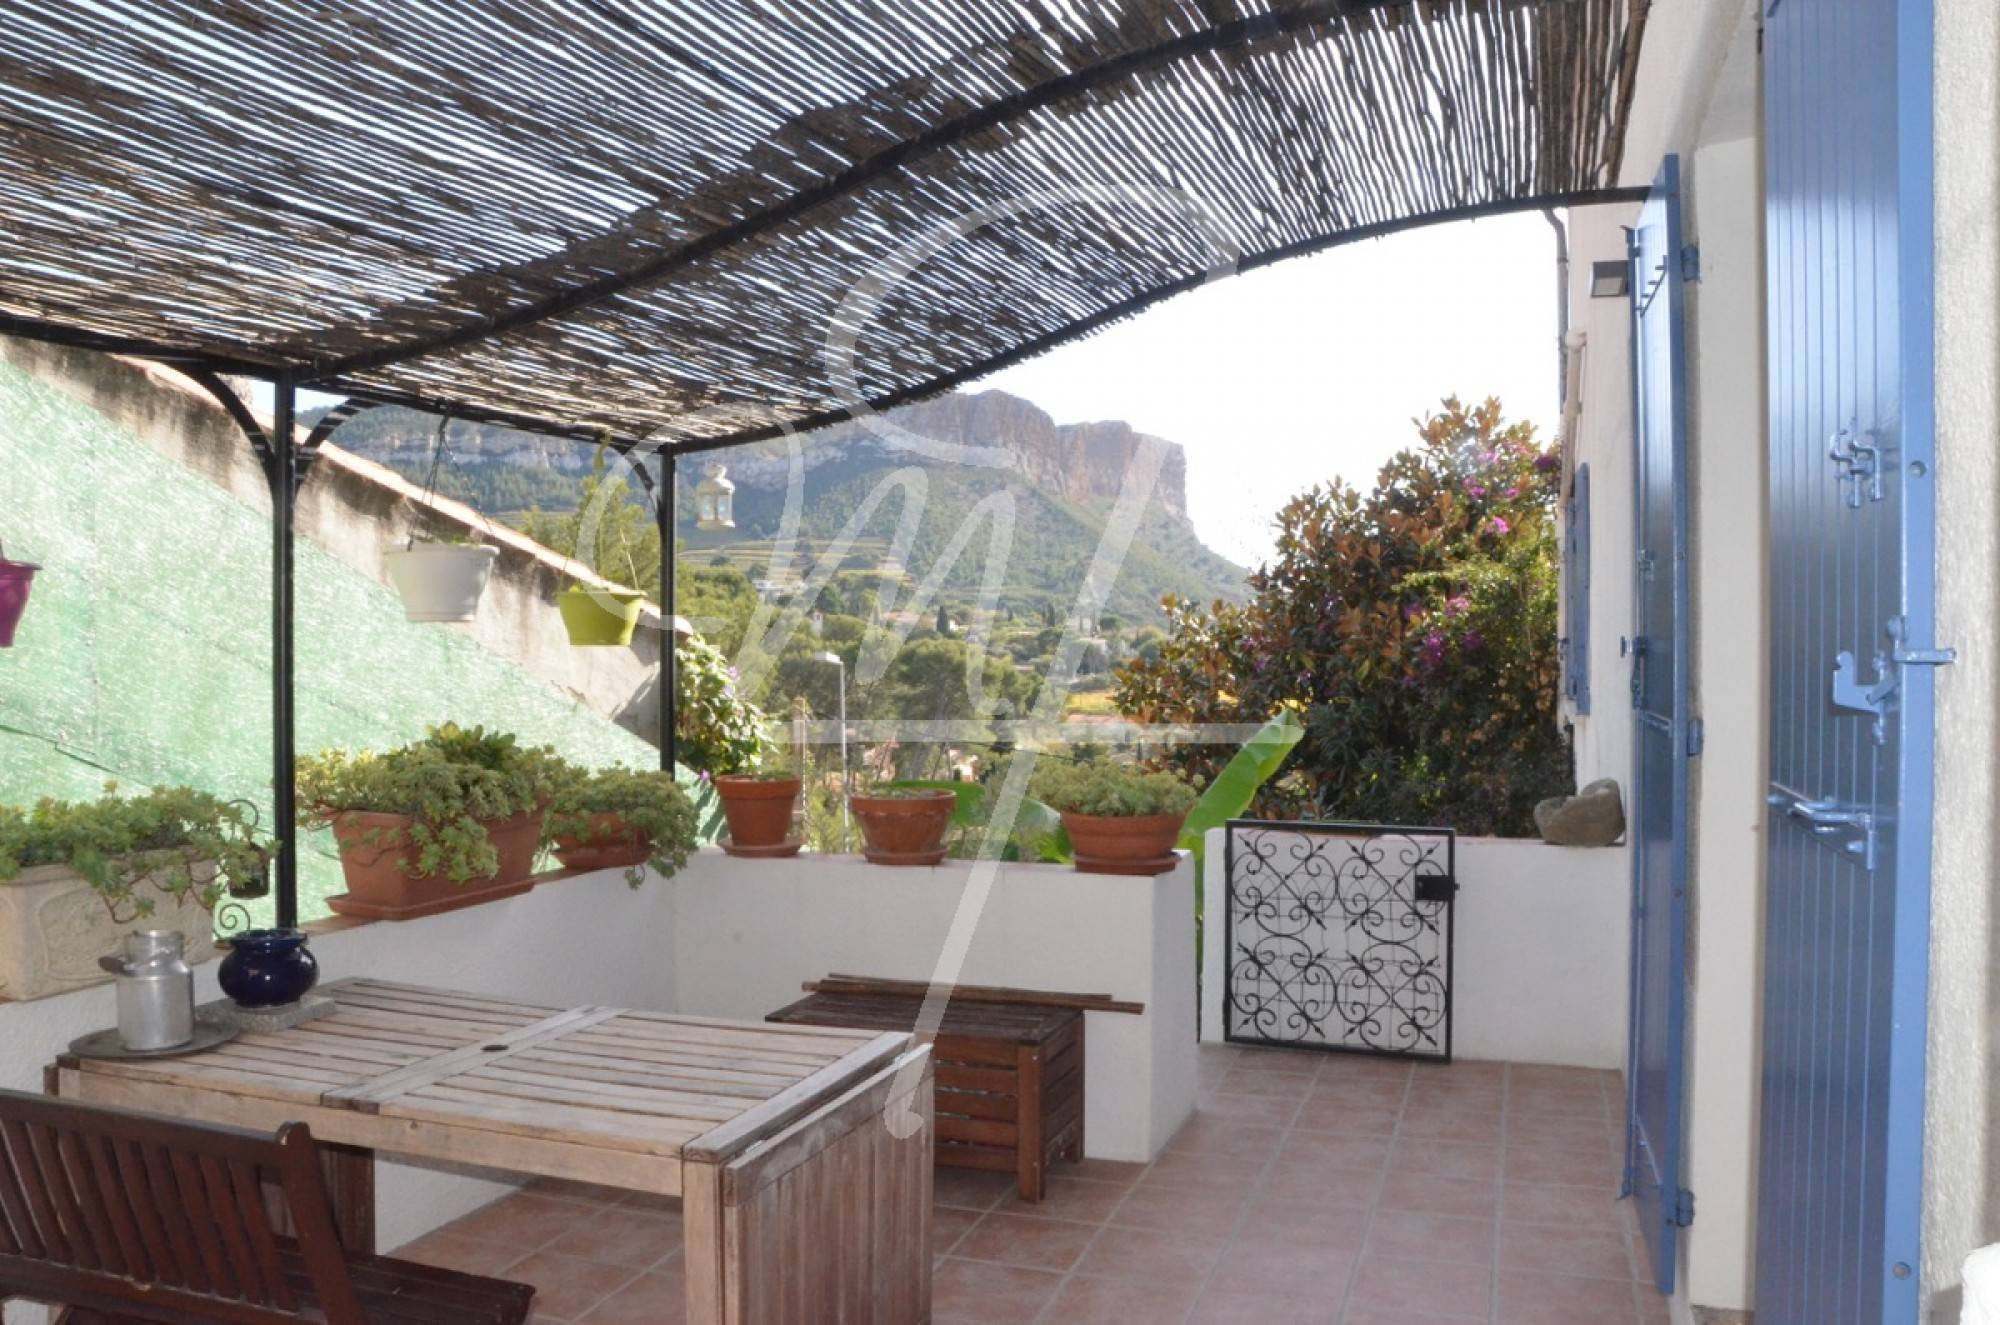 Vente Appartement T2+ cassis 1 km du centre terrasse, place de parking privative